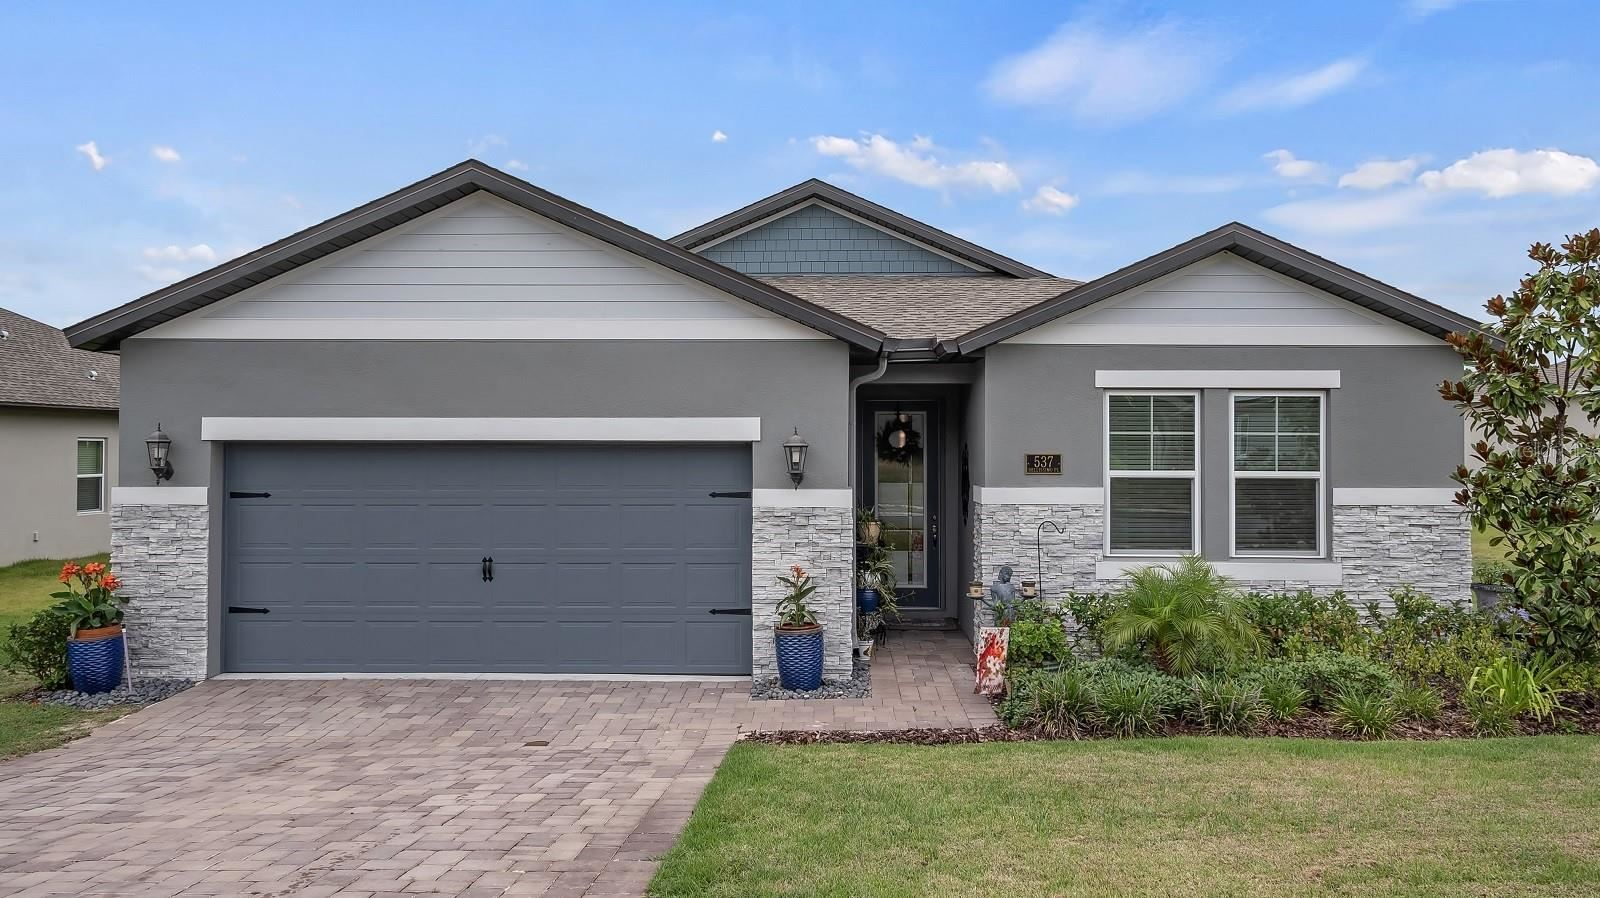 Photo of 537 BELLISSIMO PLACE, HOWEY IN THE HILLS, FL 34737 (MLS # G5043538)